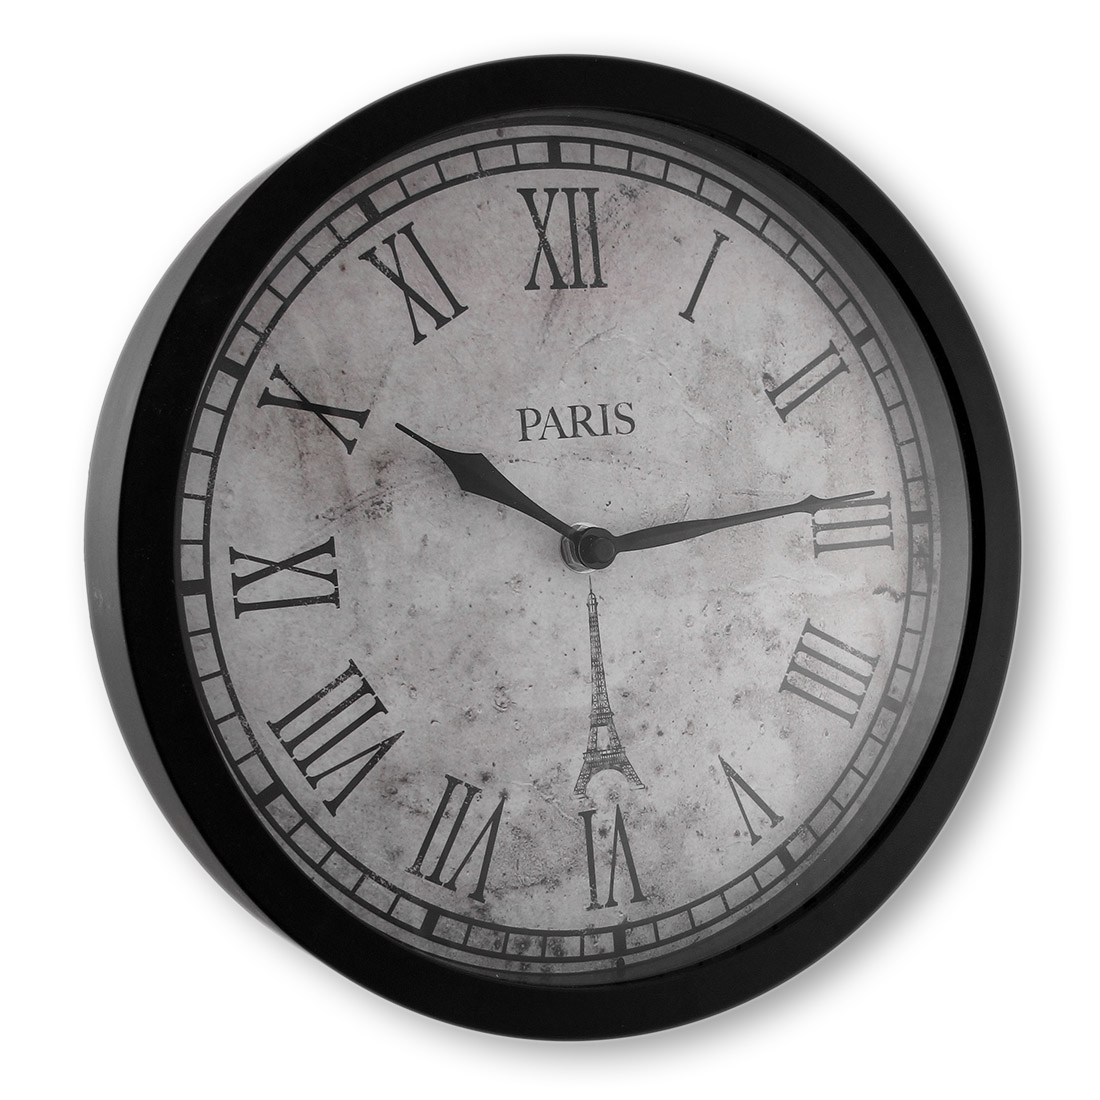 B+G Sales Inc. Paris Wall Clock with Roman Numerals 10 In.